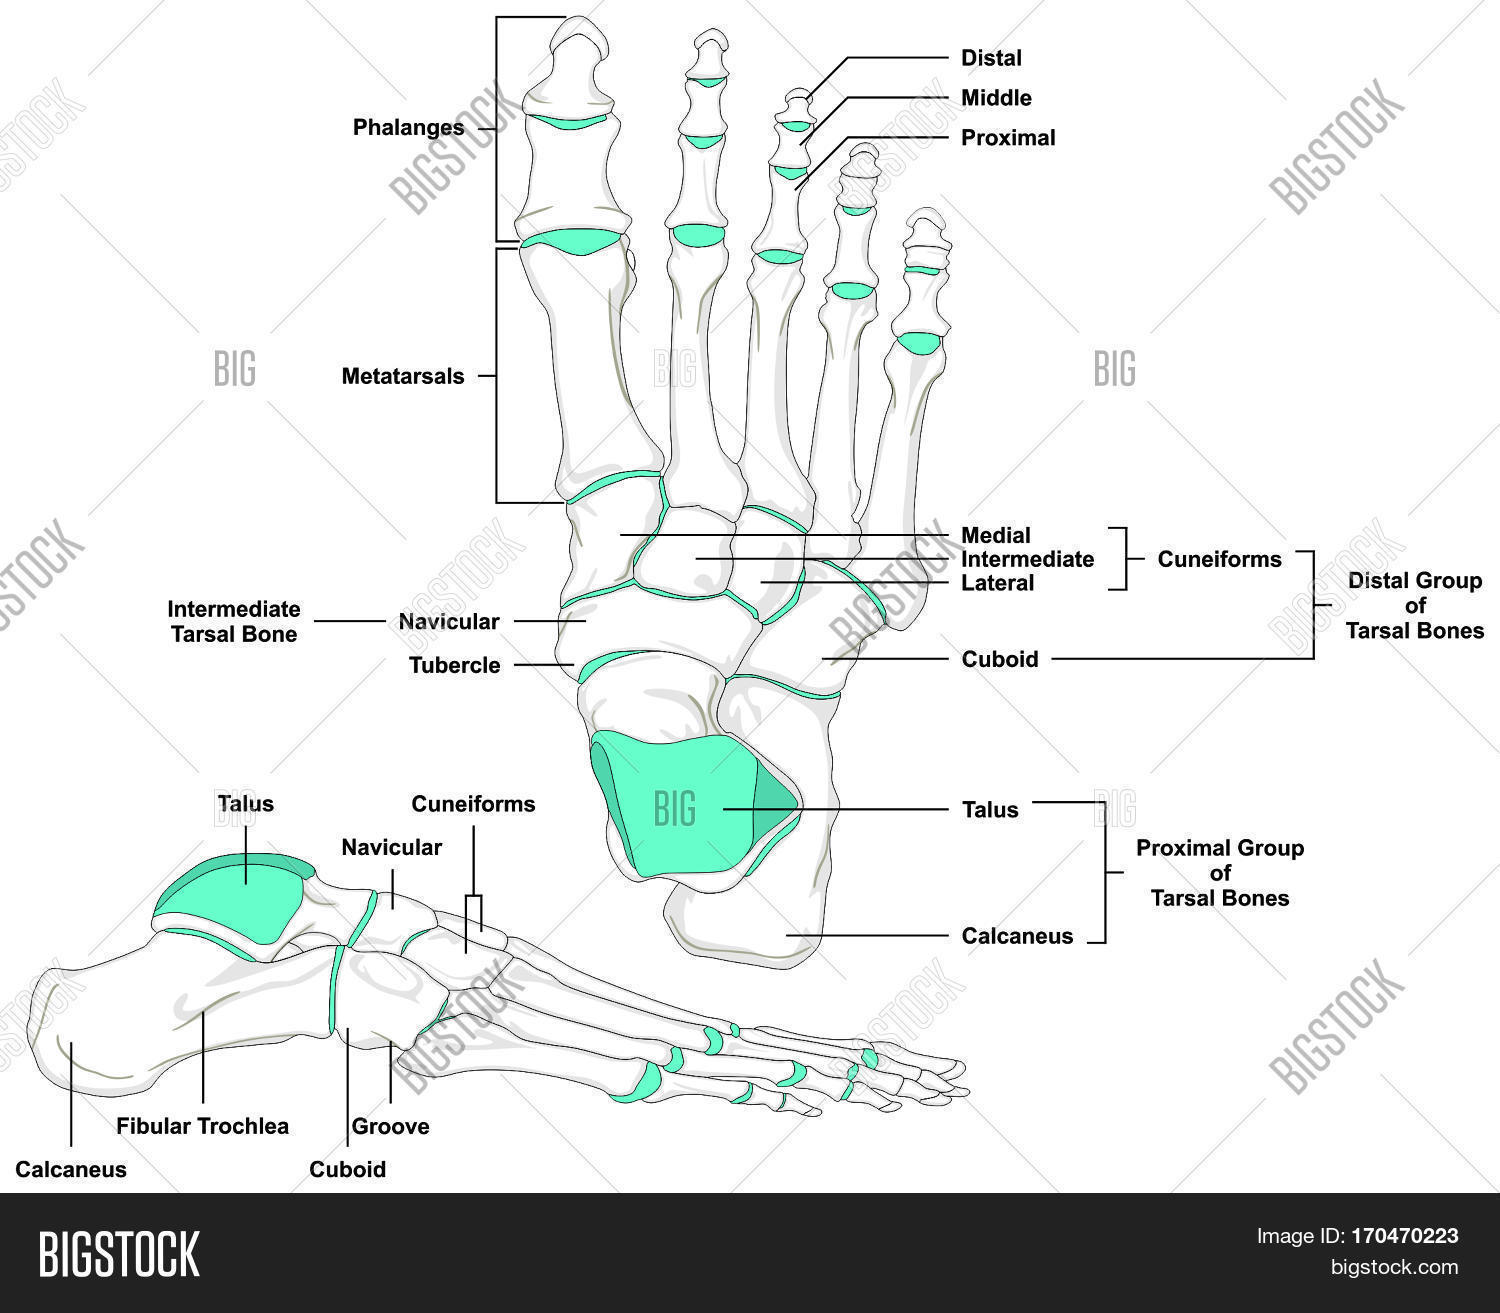 Human Foot Bones Image Photo Free Trial Bigstock